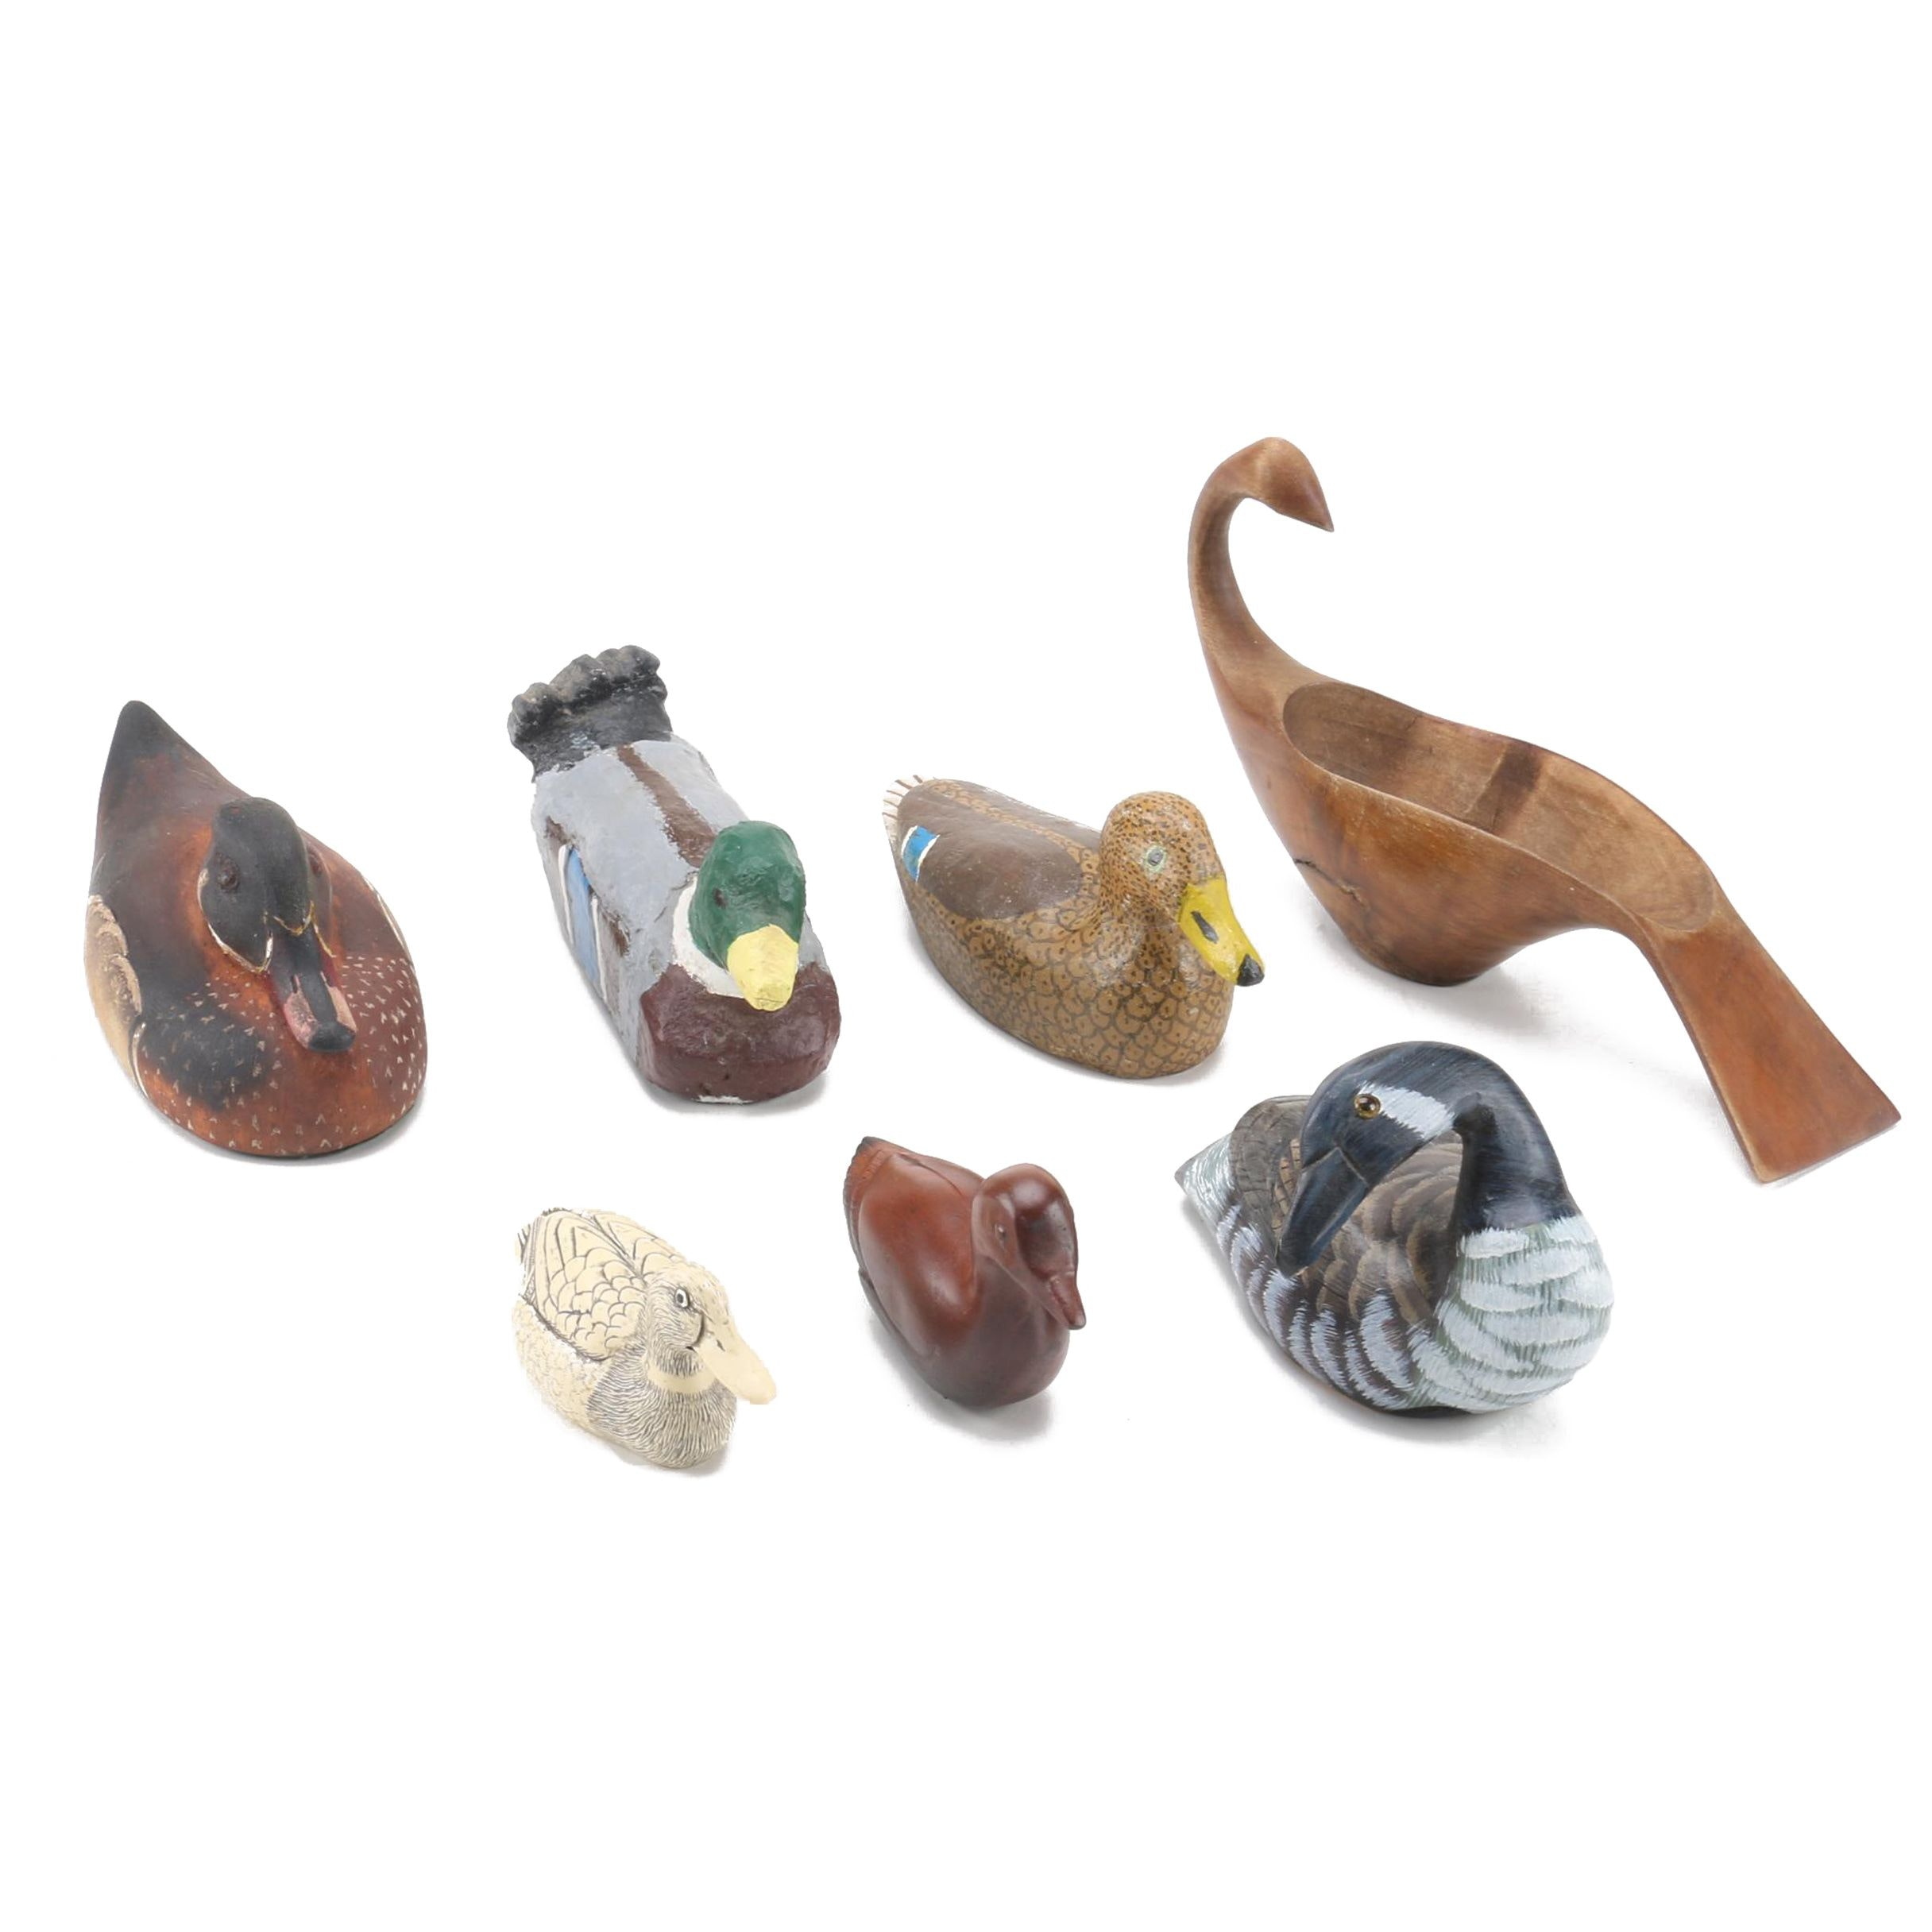 Hand-Painted Wooden Duck Figurines